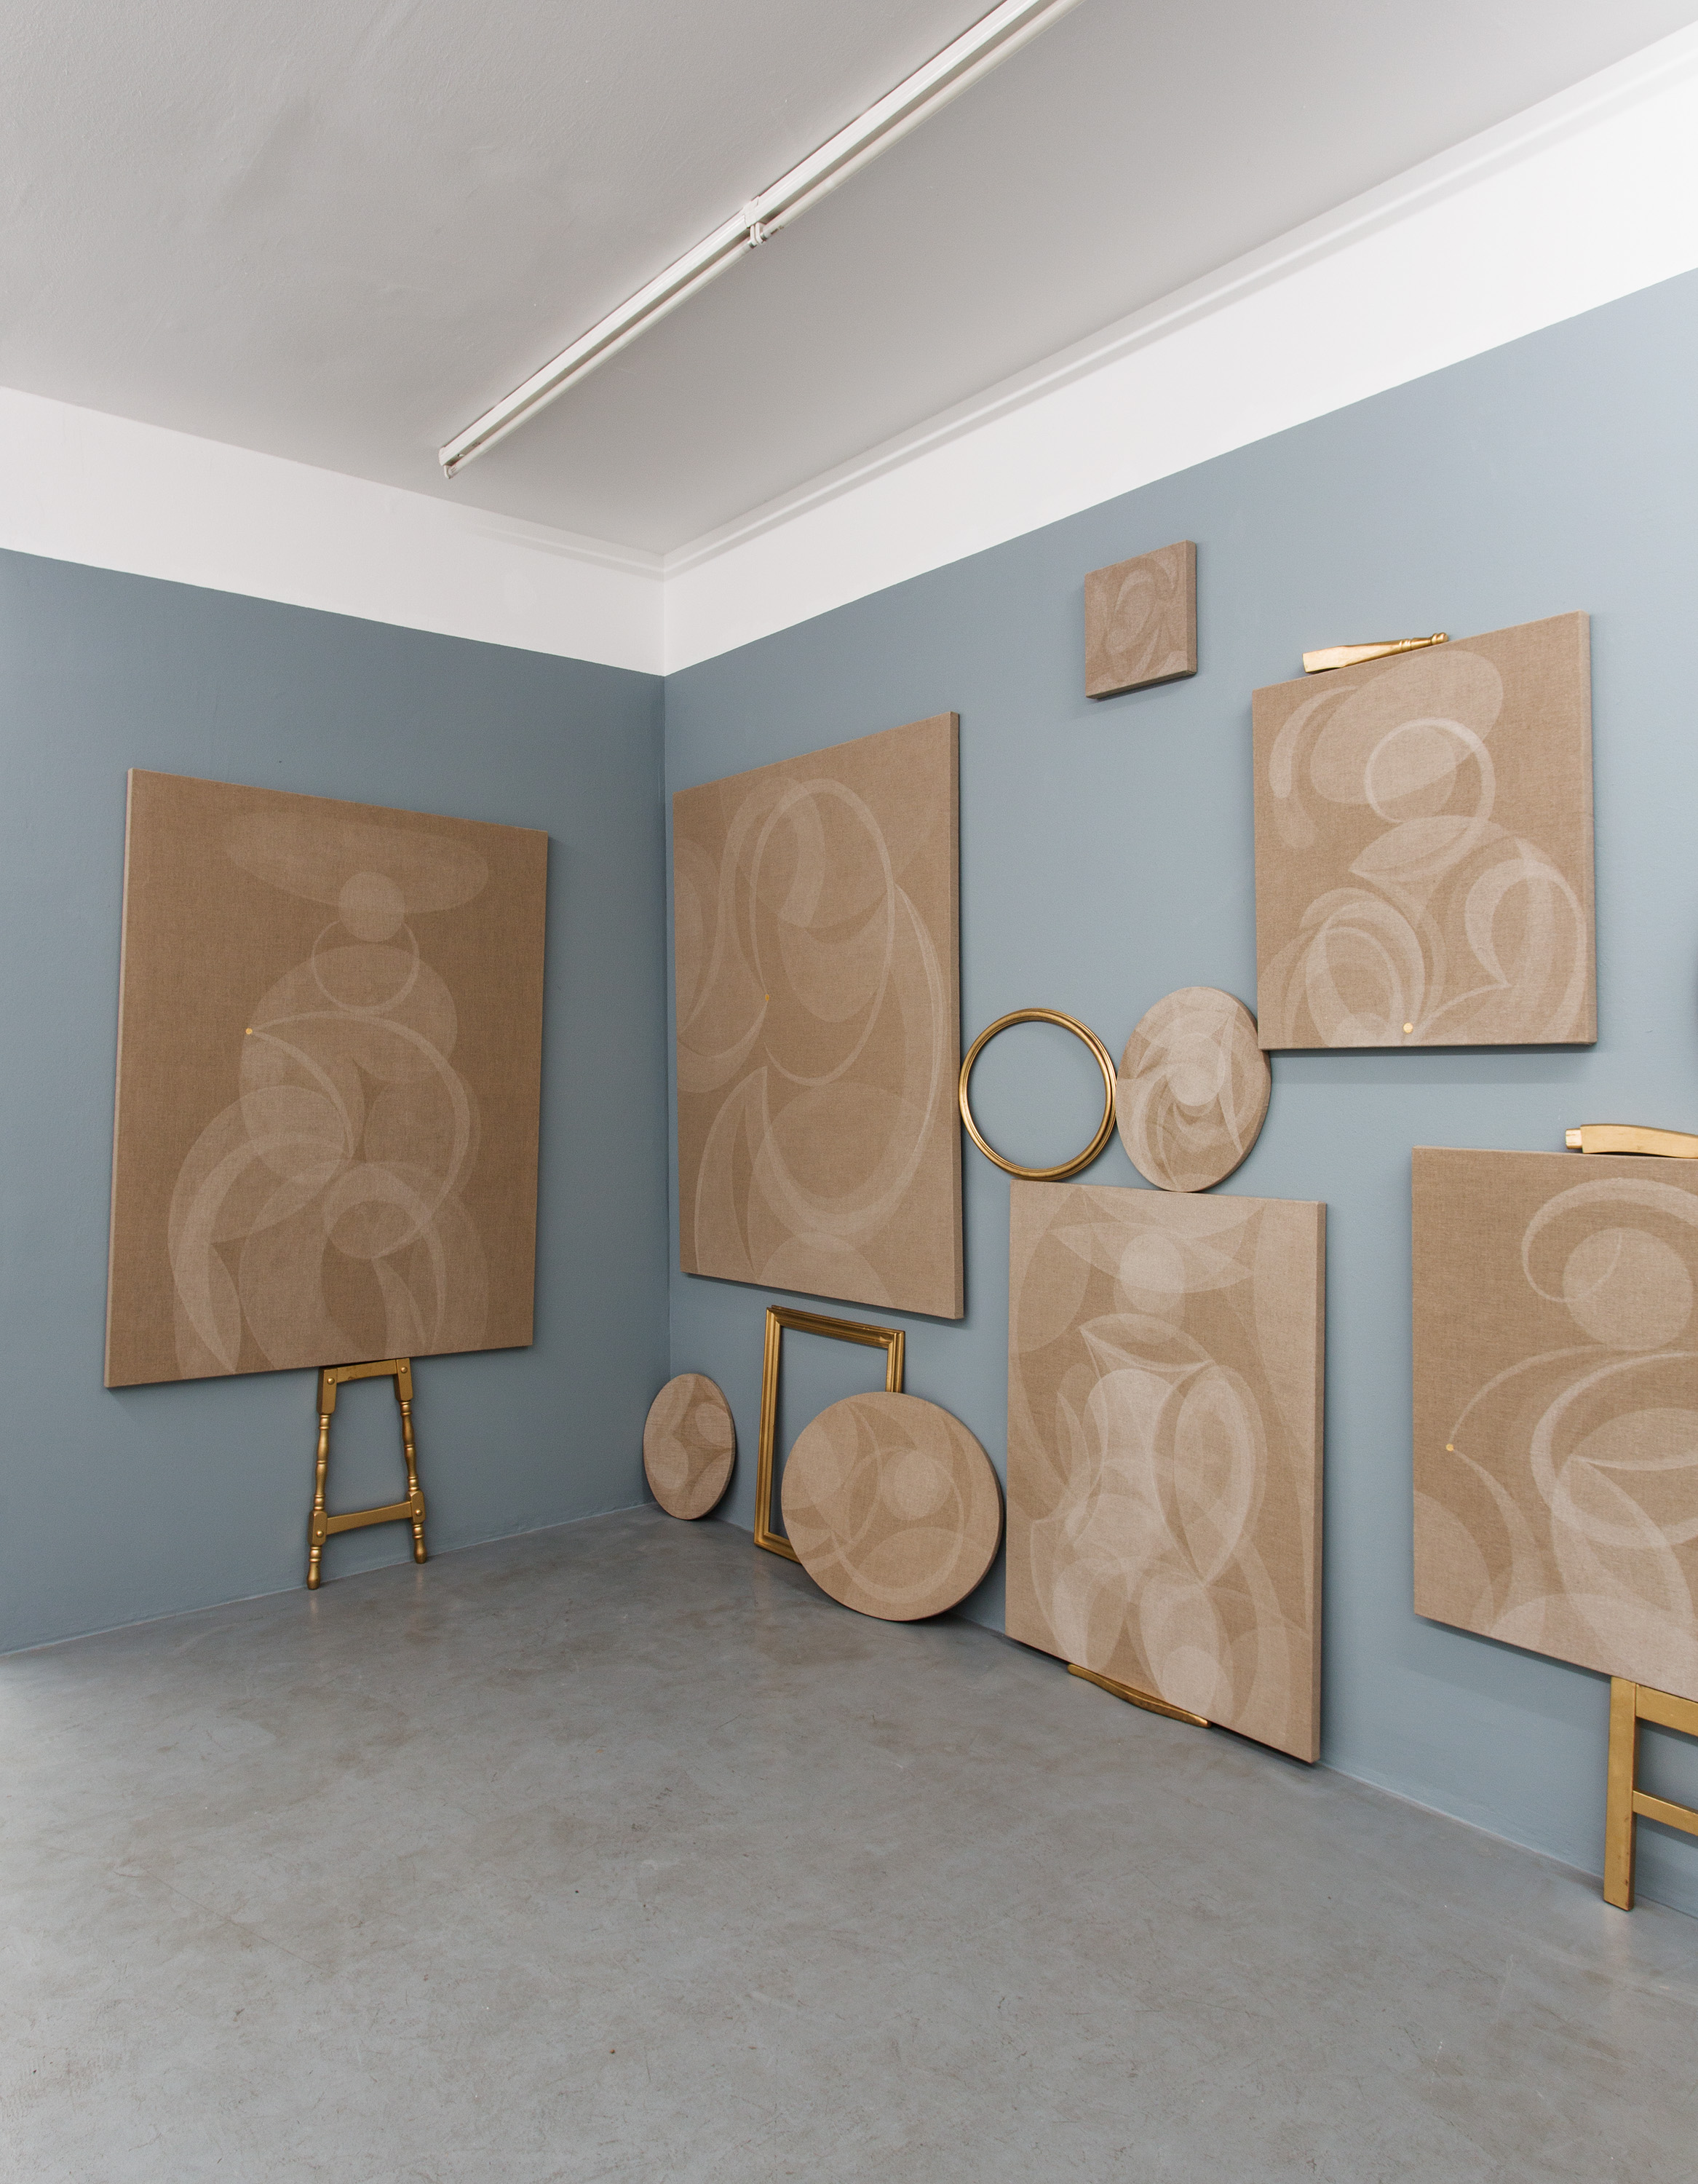 Exhibition View, Galerie Knoll, curated by_Lina Džuverović, 2013, Photo: Galerie Knoll